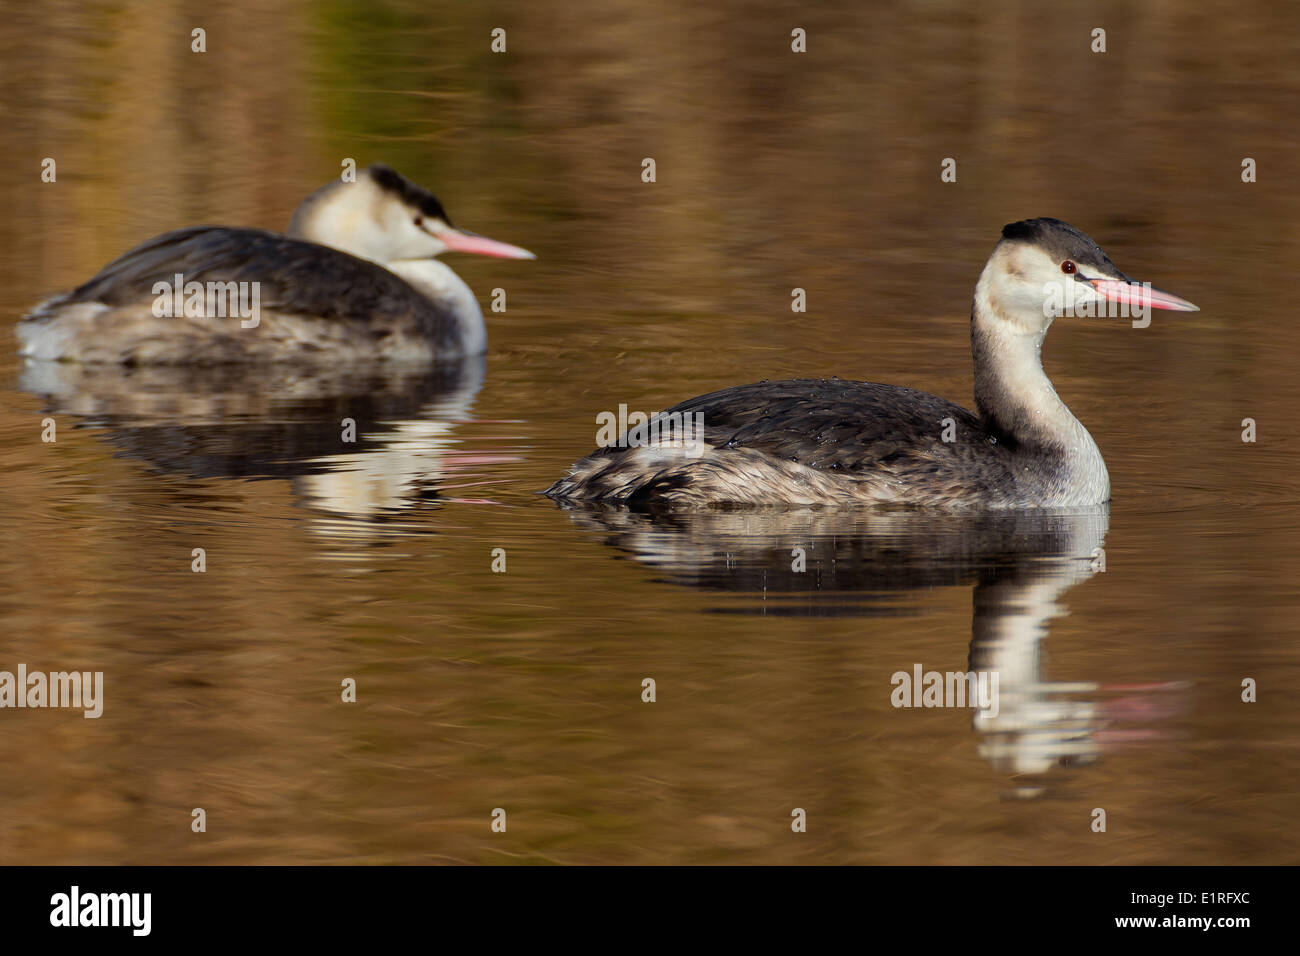 Two Great Crested Grebes in non-breeding plumage on dark water - Stock Image